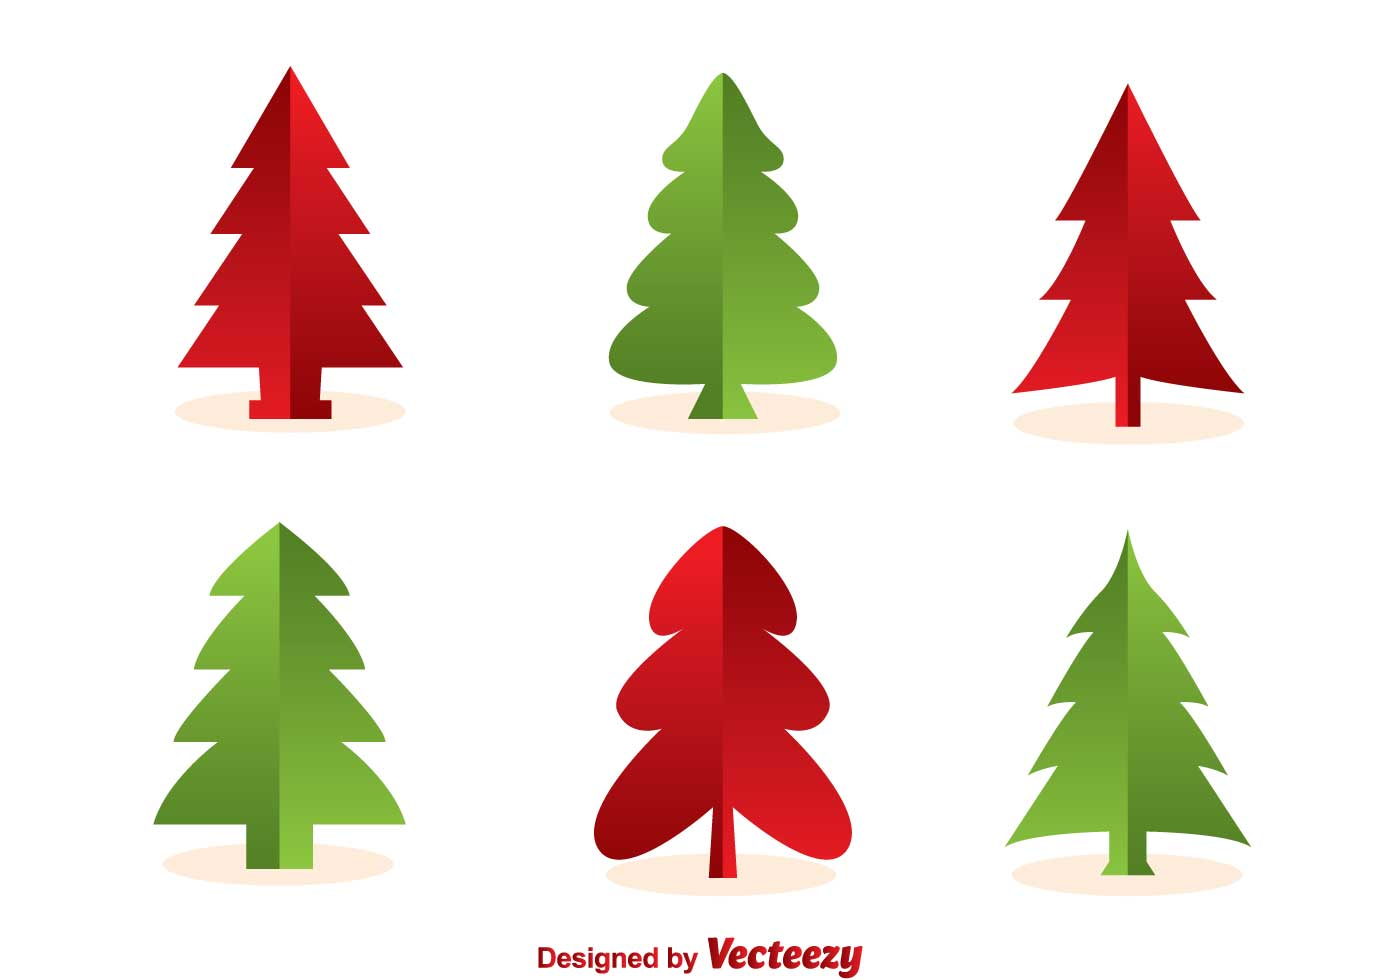 Christmas Tree Silhouette Vectors - Download Free Vector Art, Stock ...